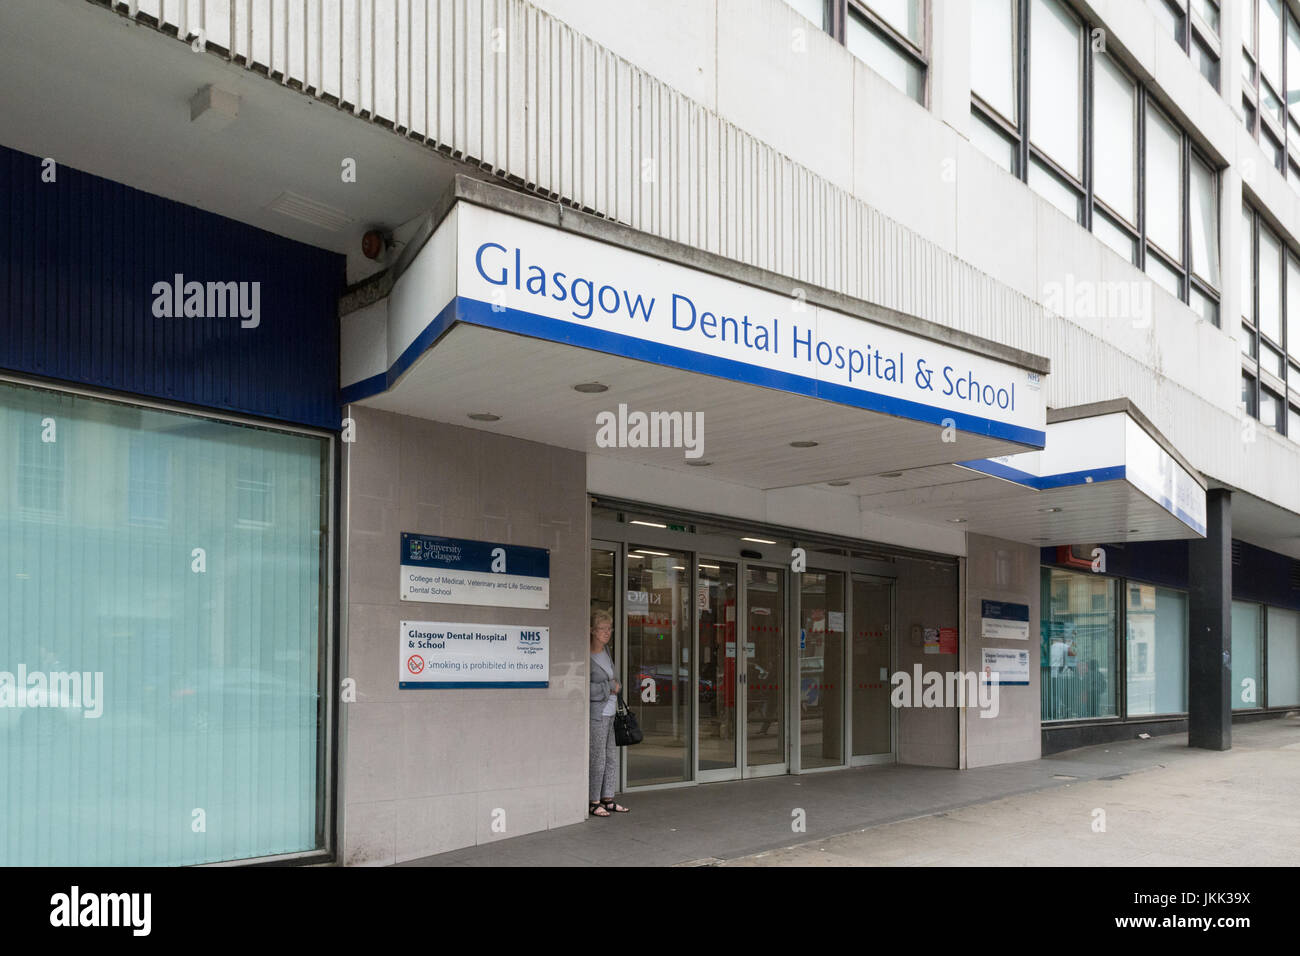 Glasgow Dental Hospital Stockbild